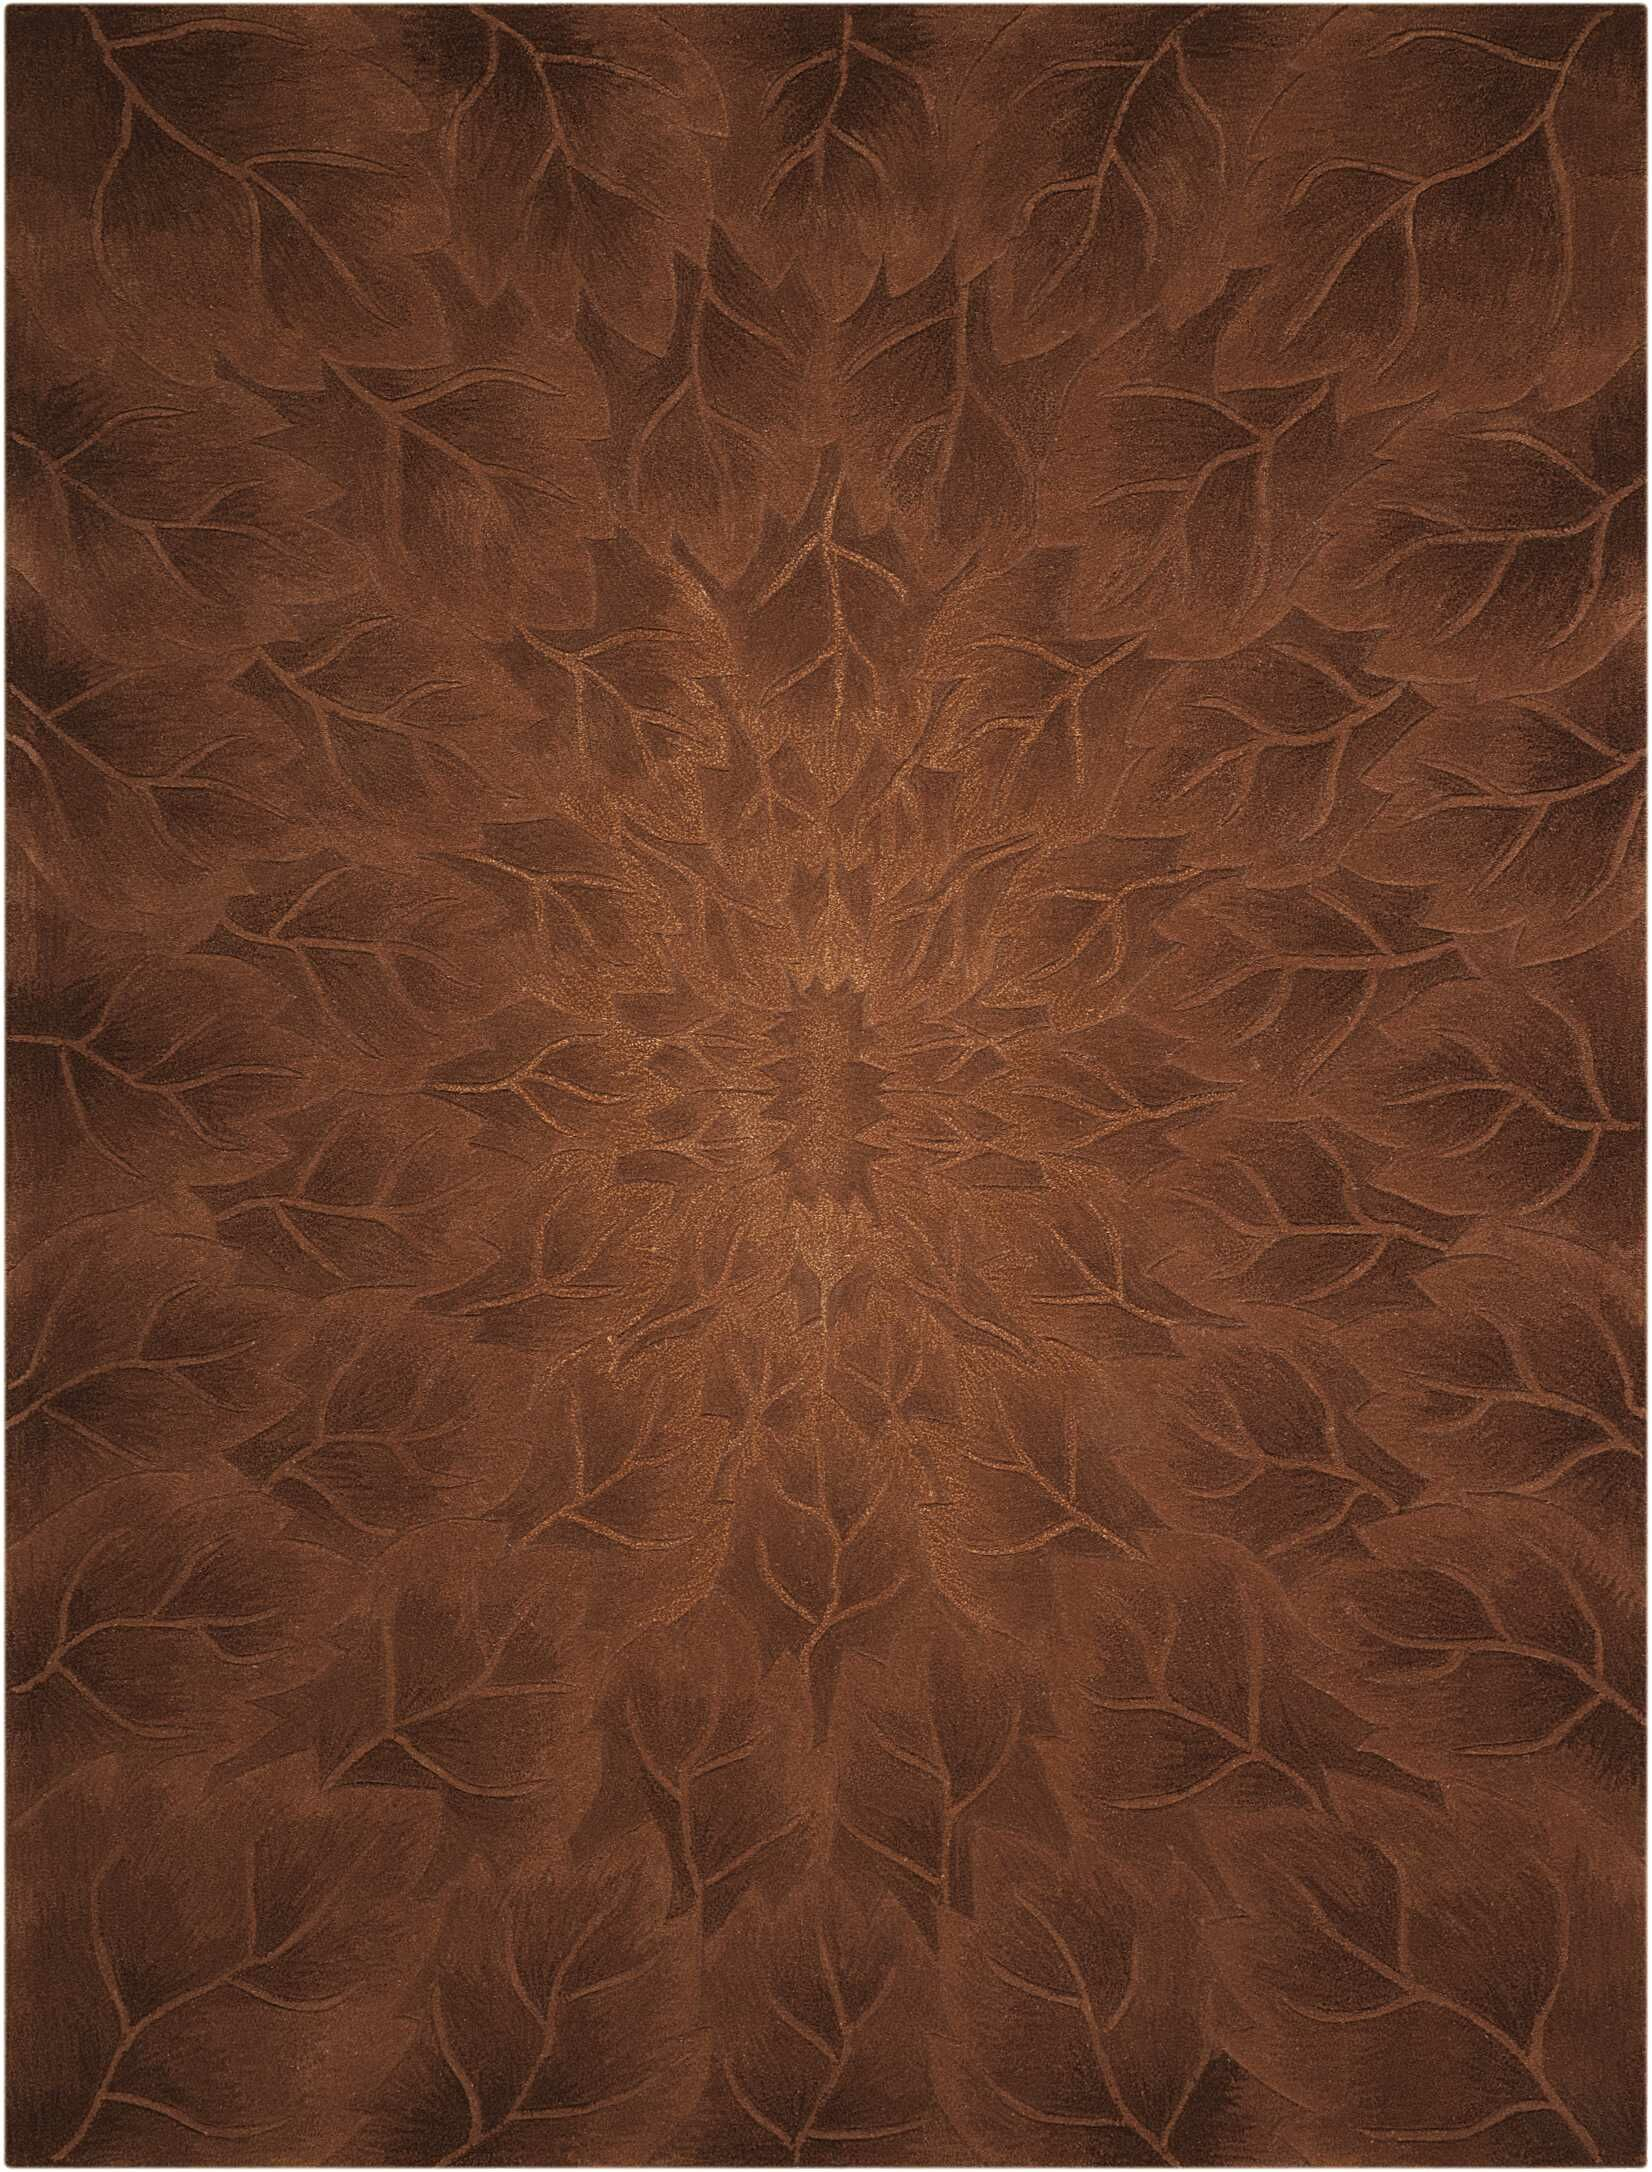 Downing Hand-Tufted Tobacco Area Rug Rug Size: Rectangle 5'6